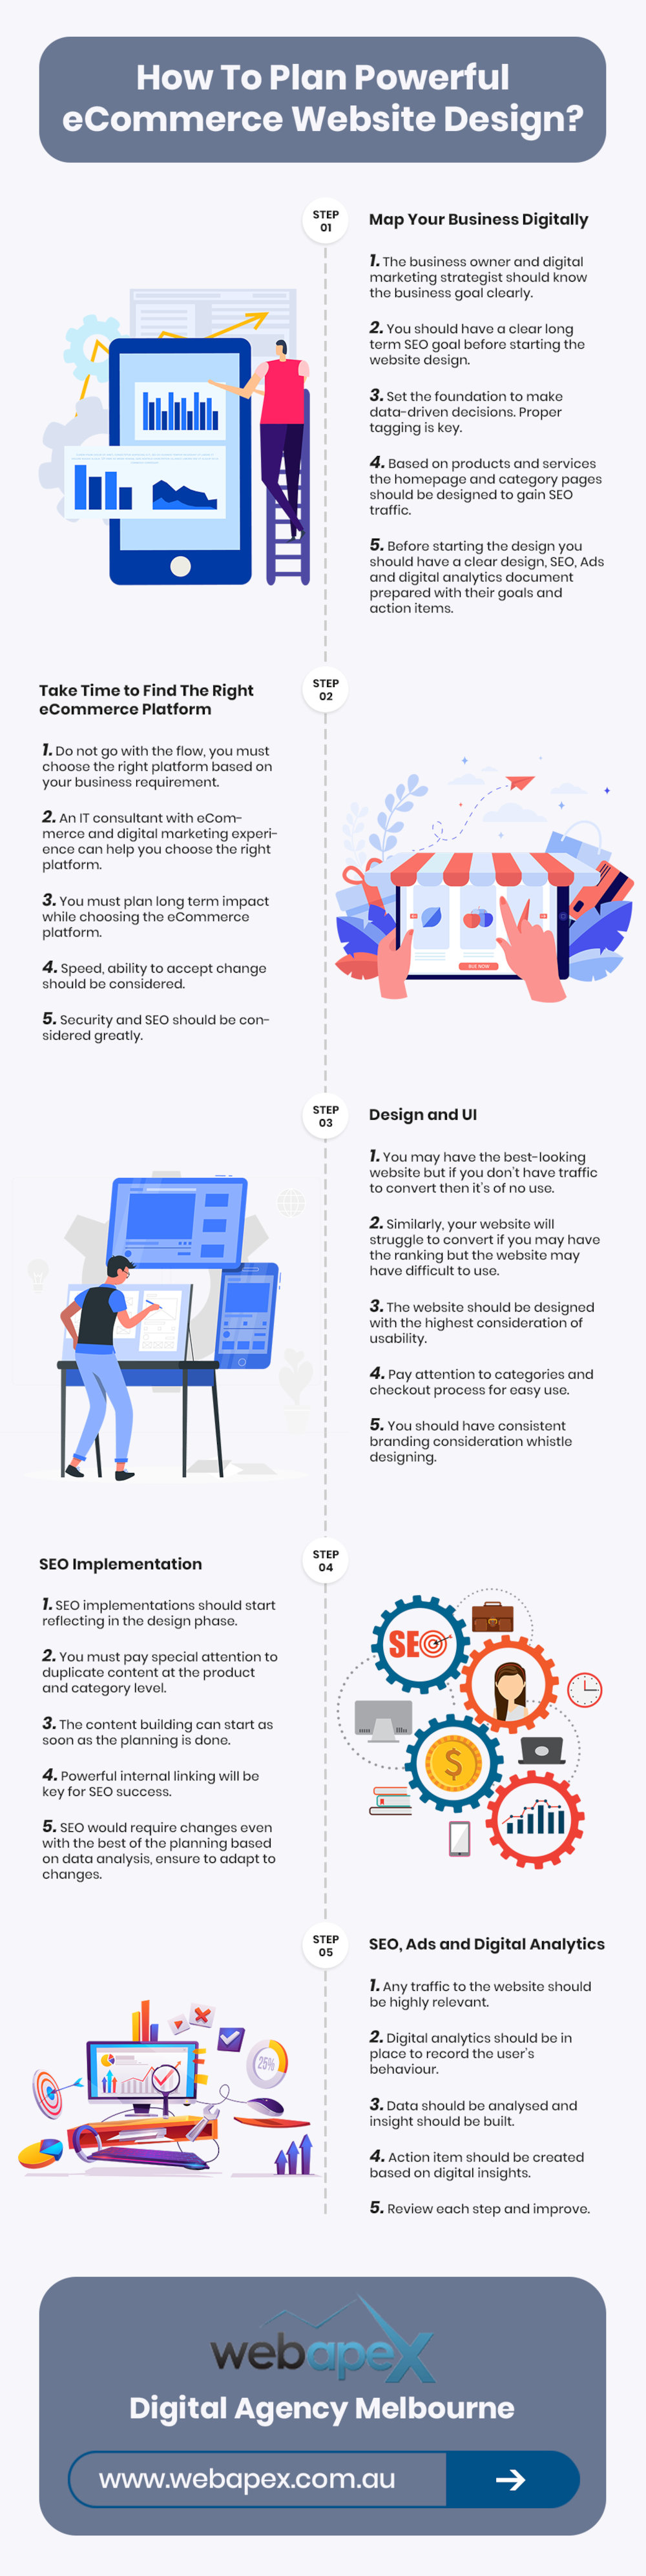 eCommerce Website Design Planning Steps